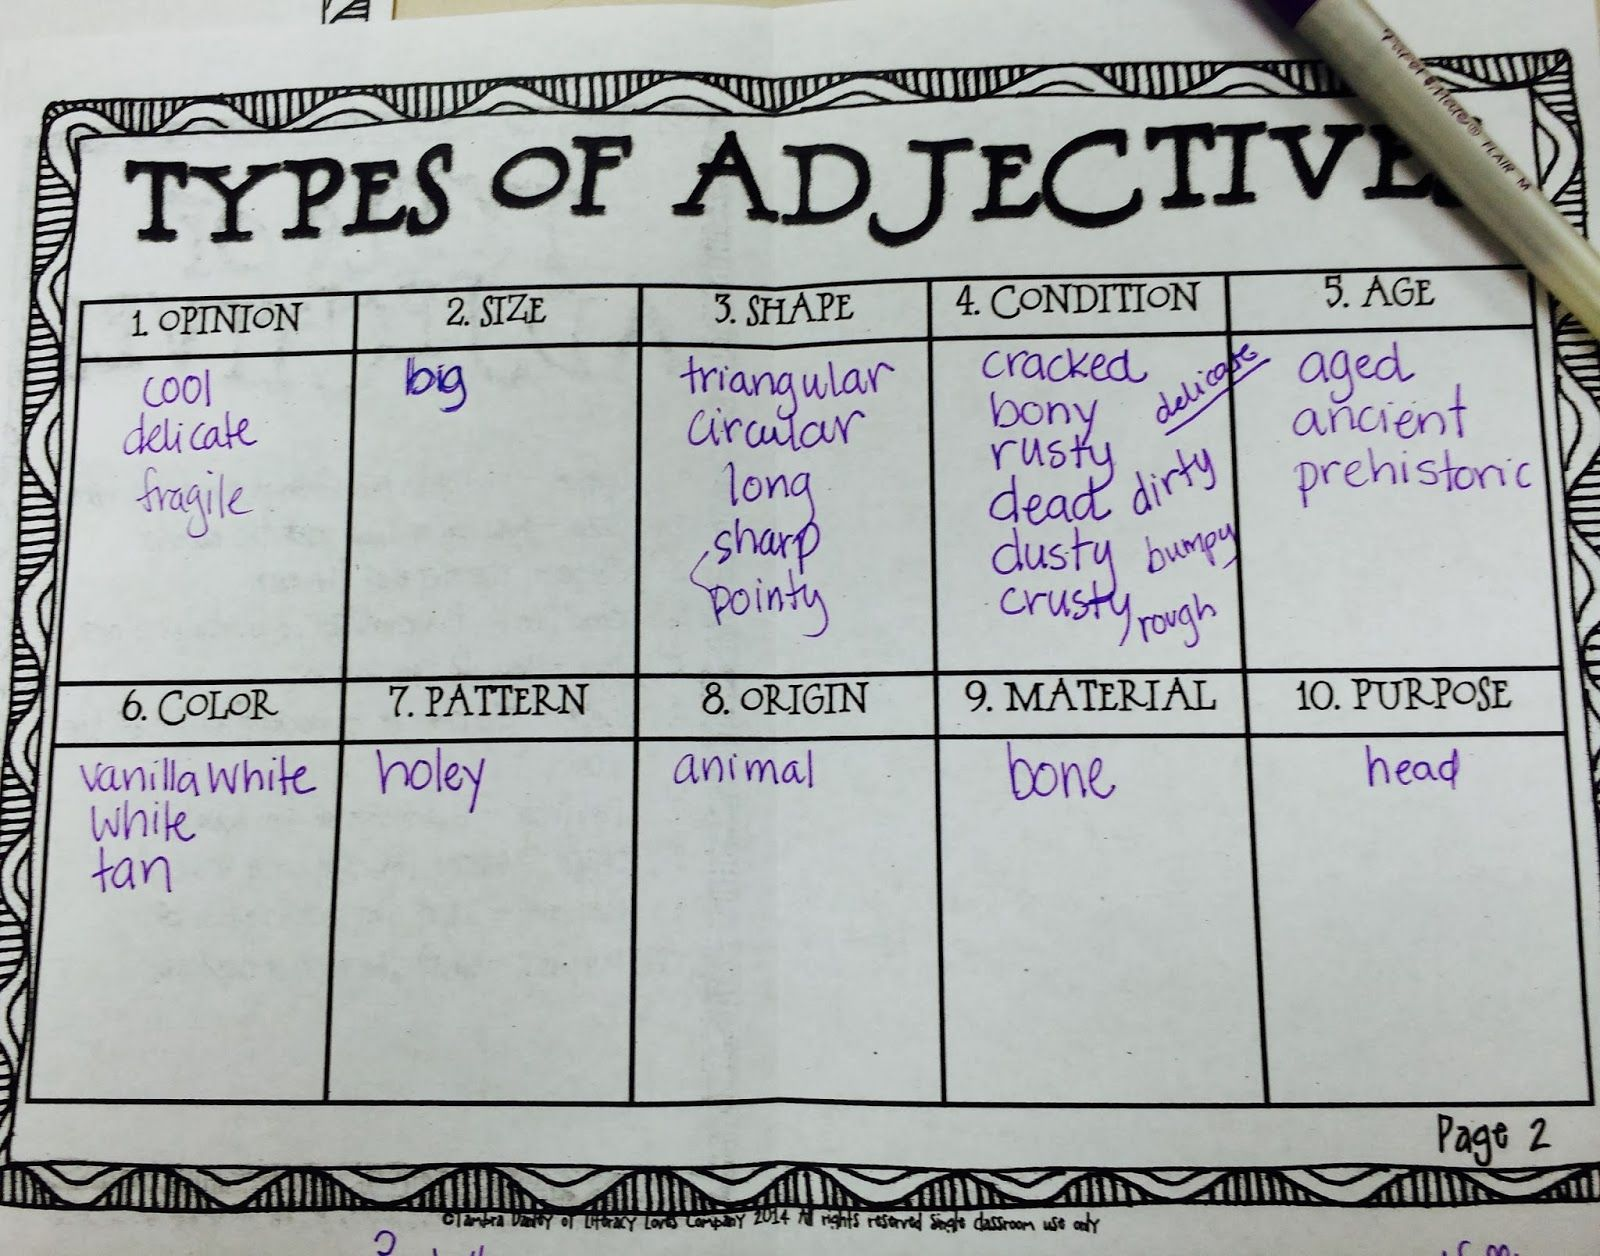 Ordering Adjectives And A Skull